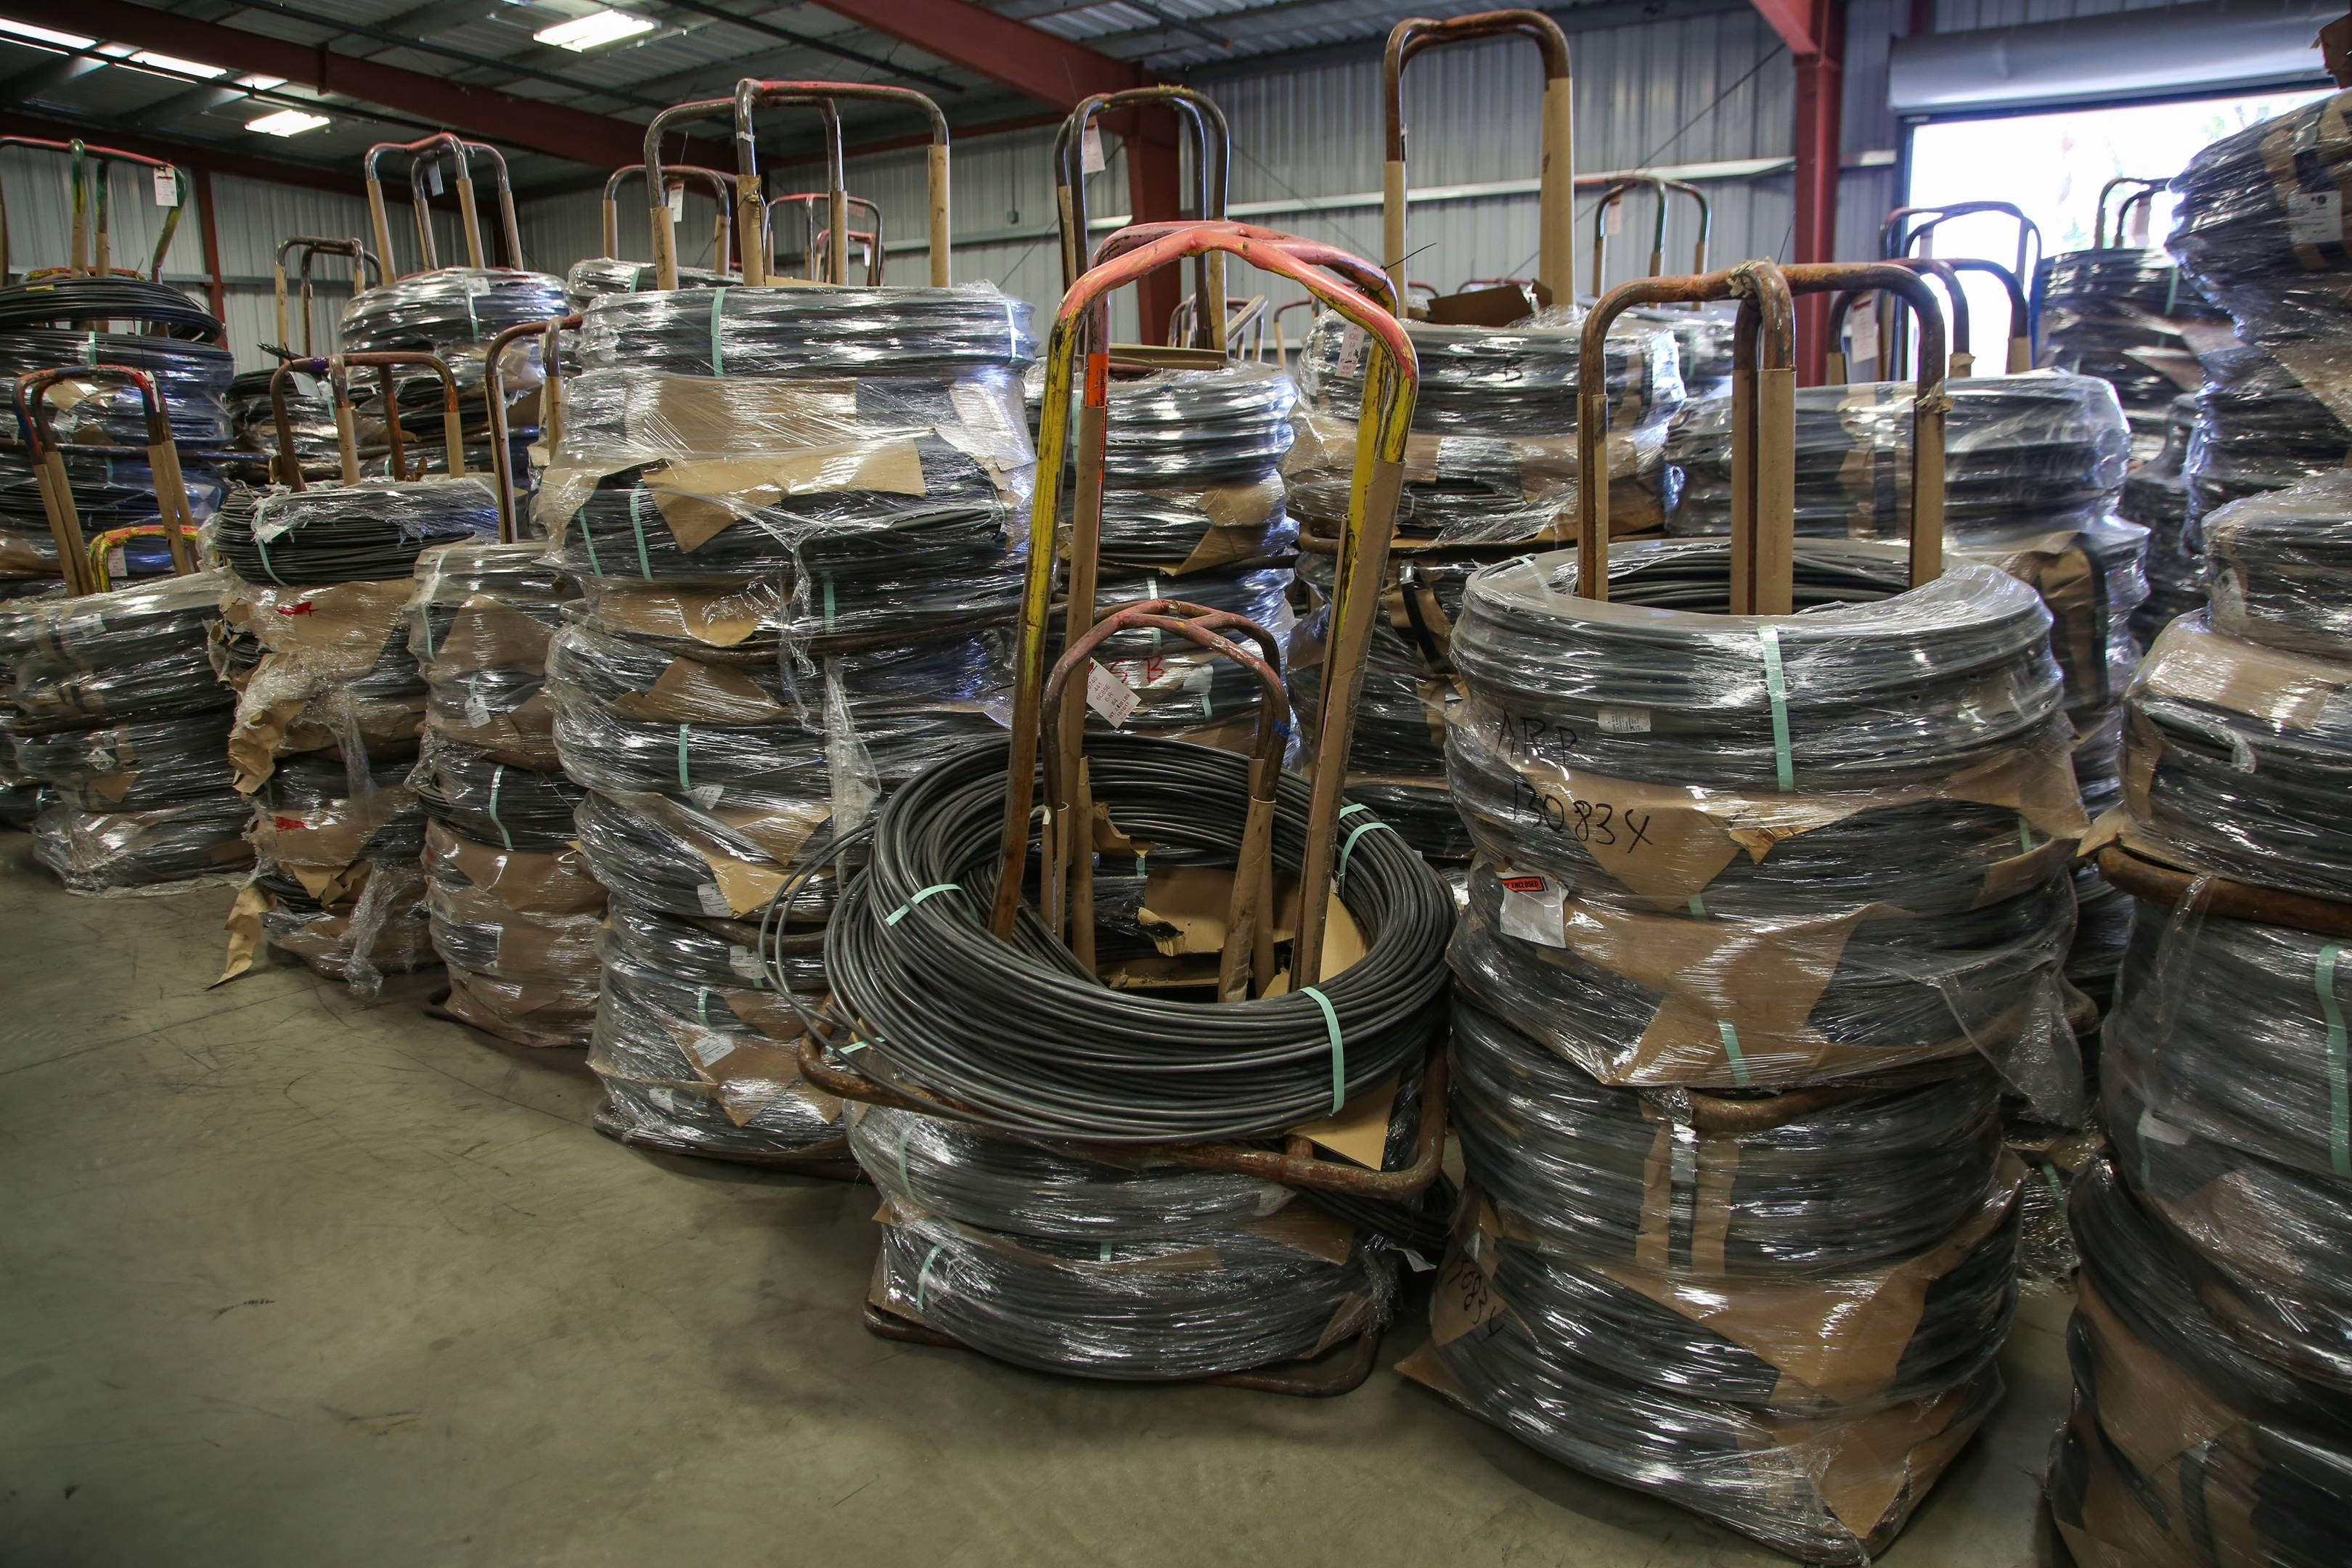 Spools of wire arrive by the truckload and are loaded in warehouses